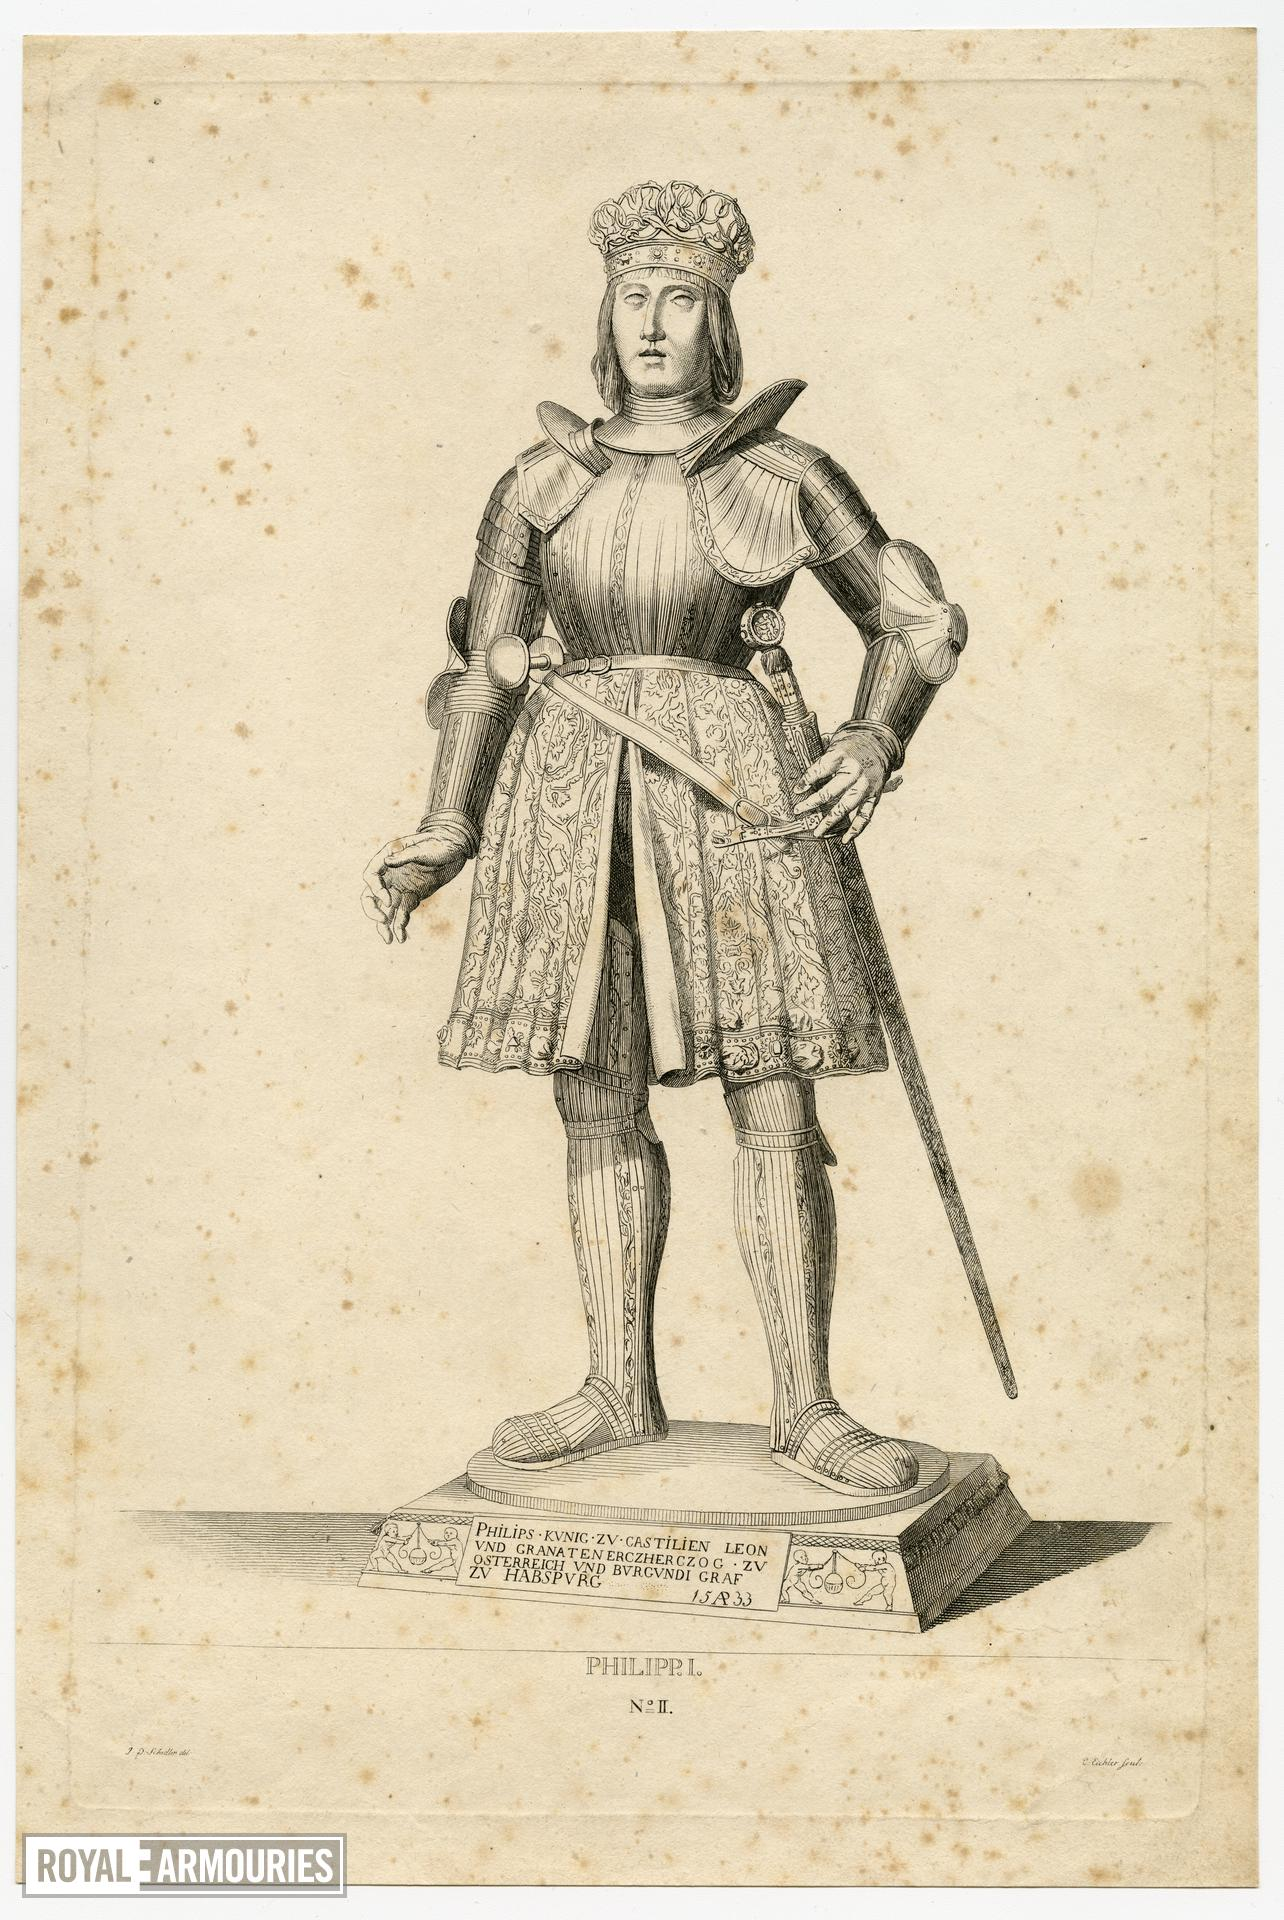 2/8 engravings of statues. No. II Philipp I.